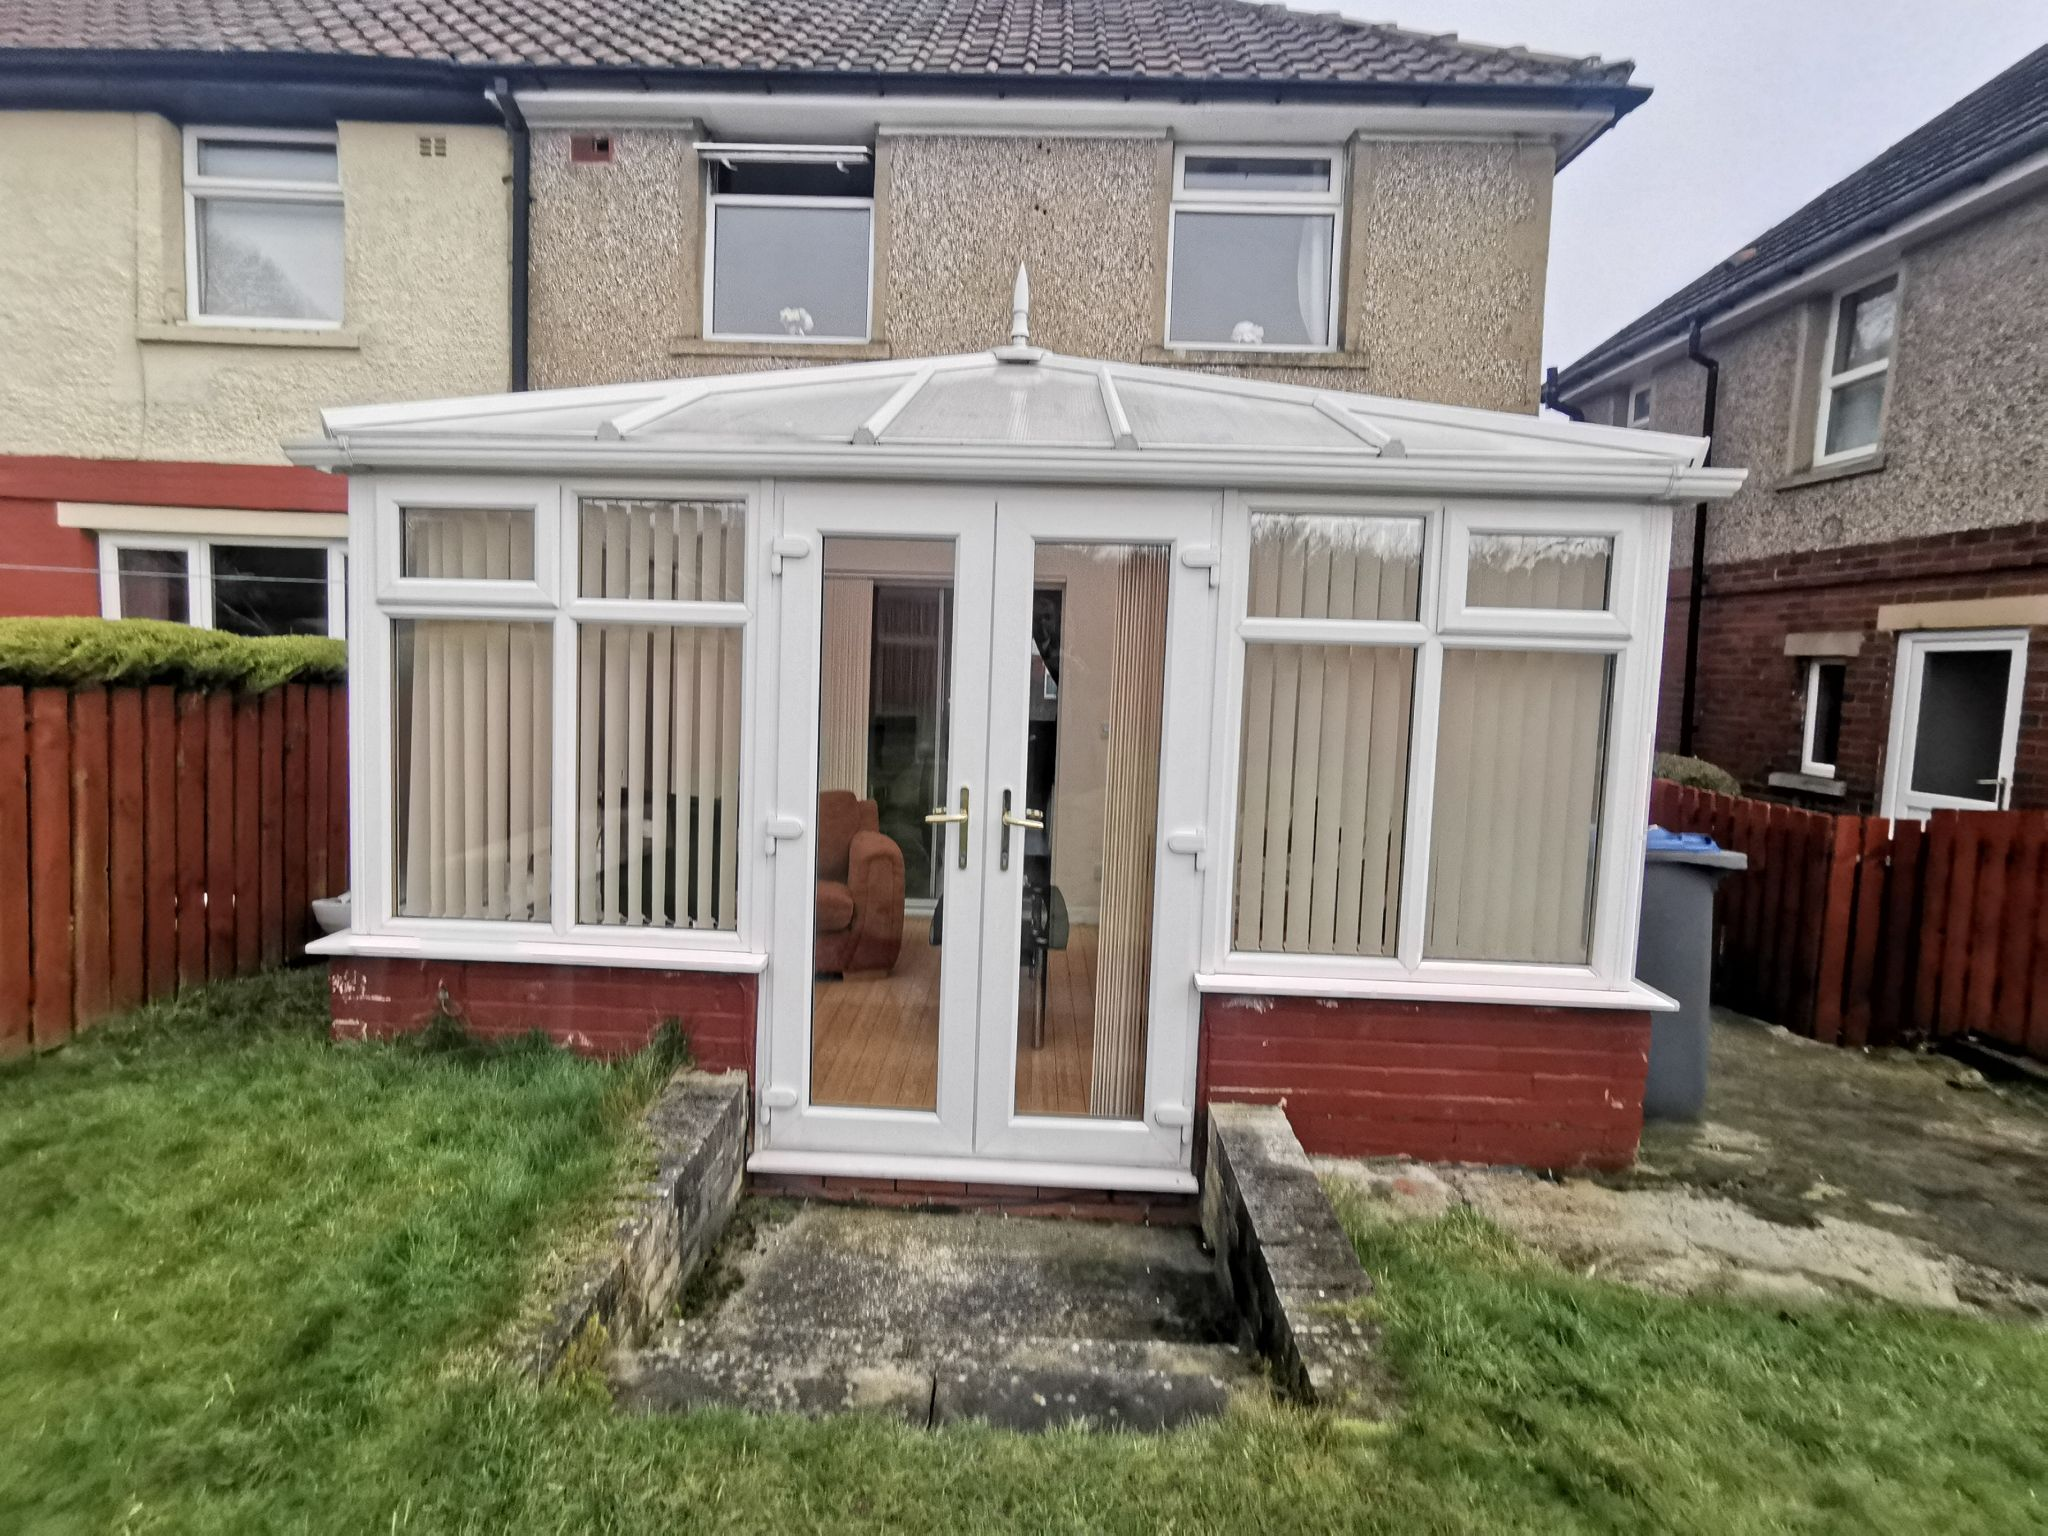 3 bedroom semi-detached house in Bradford - Photograph 19.